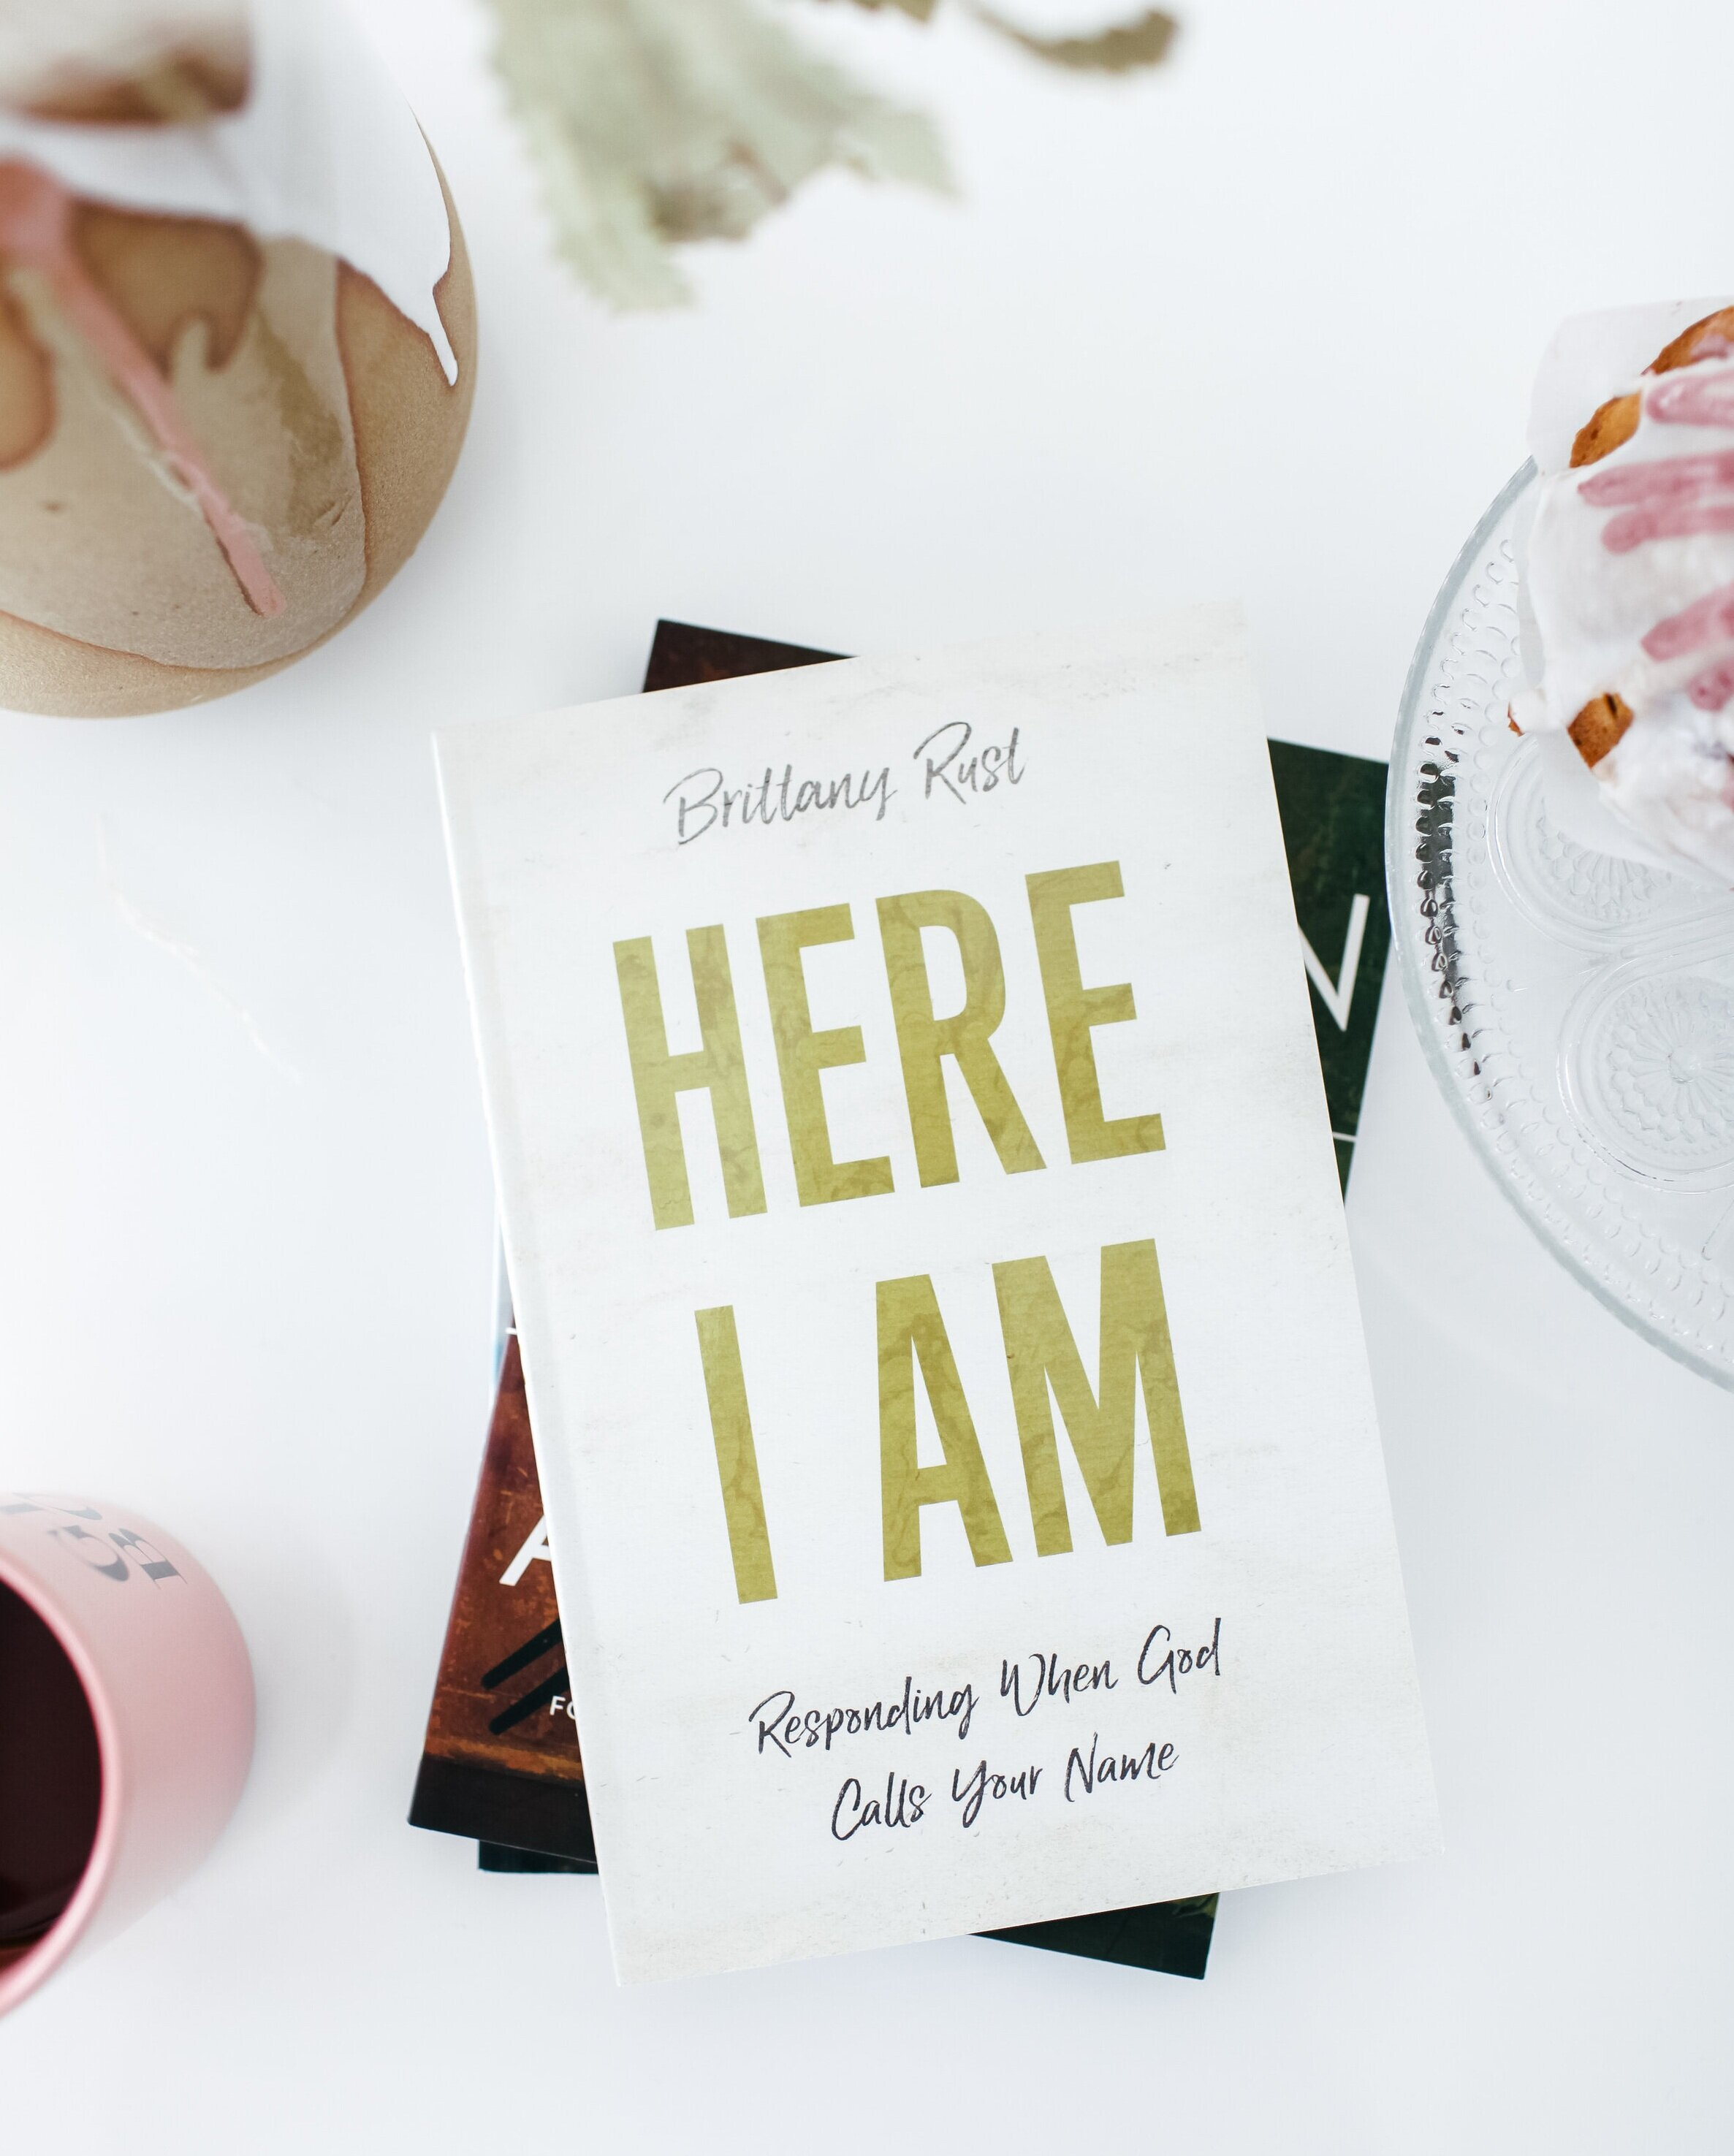 Here I Am - Have you ever wondered how to hear God's voice or questioned a prompting you had to step out in faith?Here I Am uncovers how you can distinguish God's voice from distractions, gives you the confidence to step out when God calls your name, and shows you how sowing in obedience reaps eternal rewards.